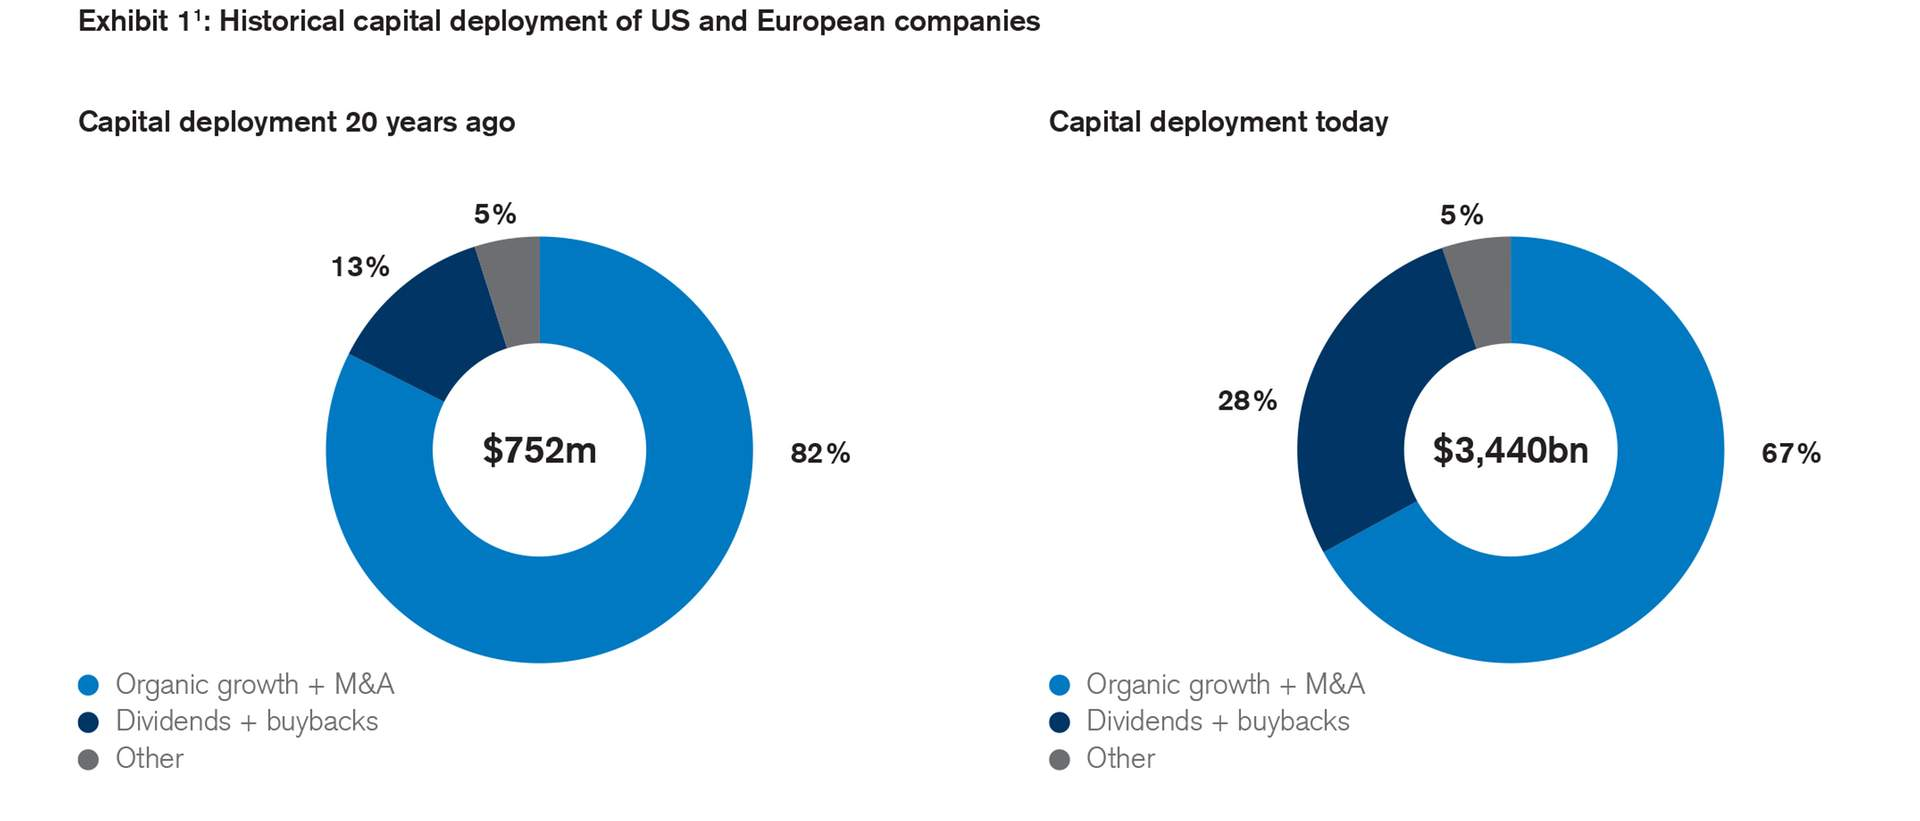 Historical capital deployment of US and European companies